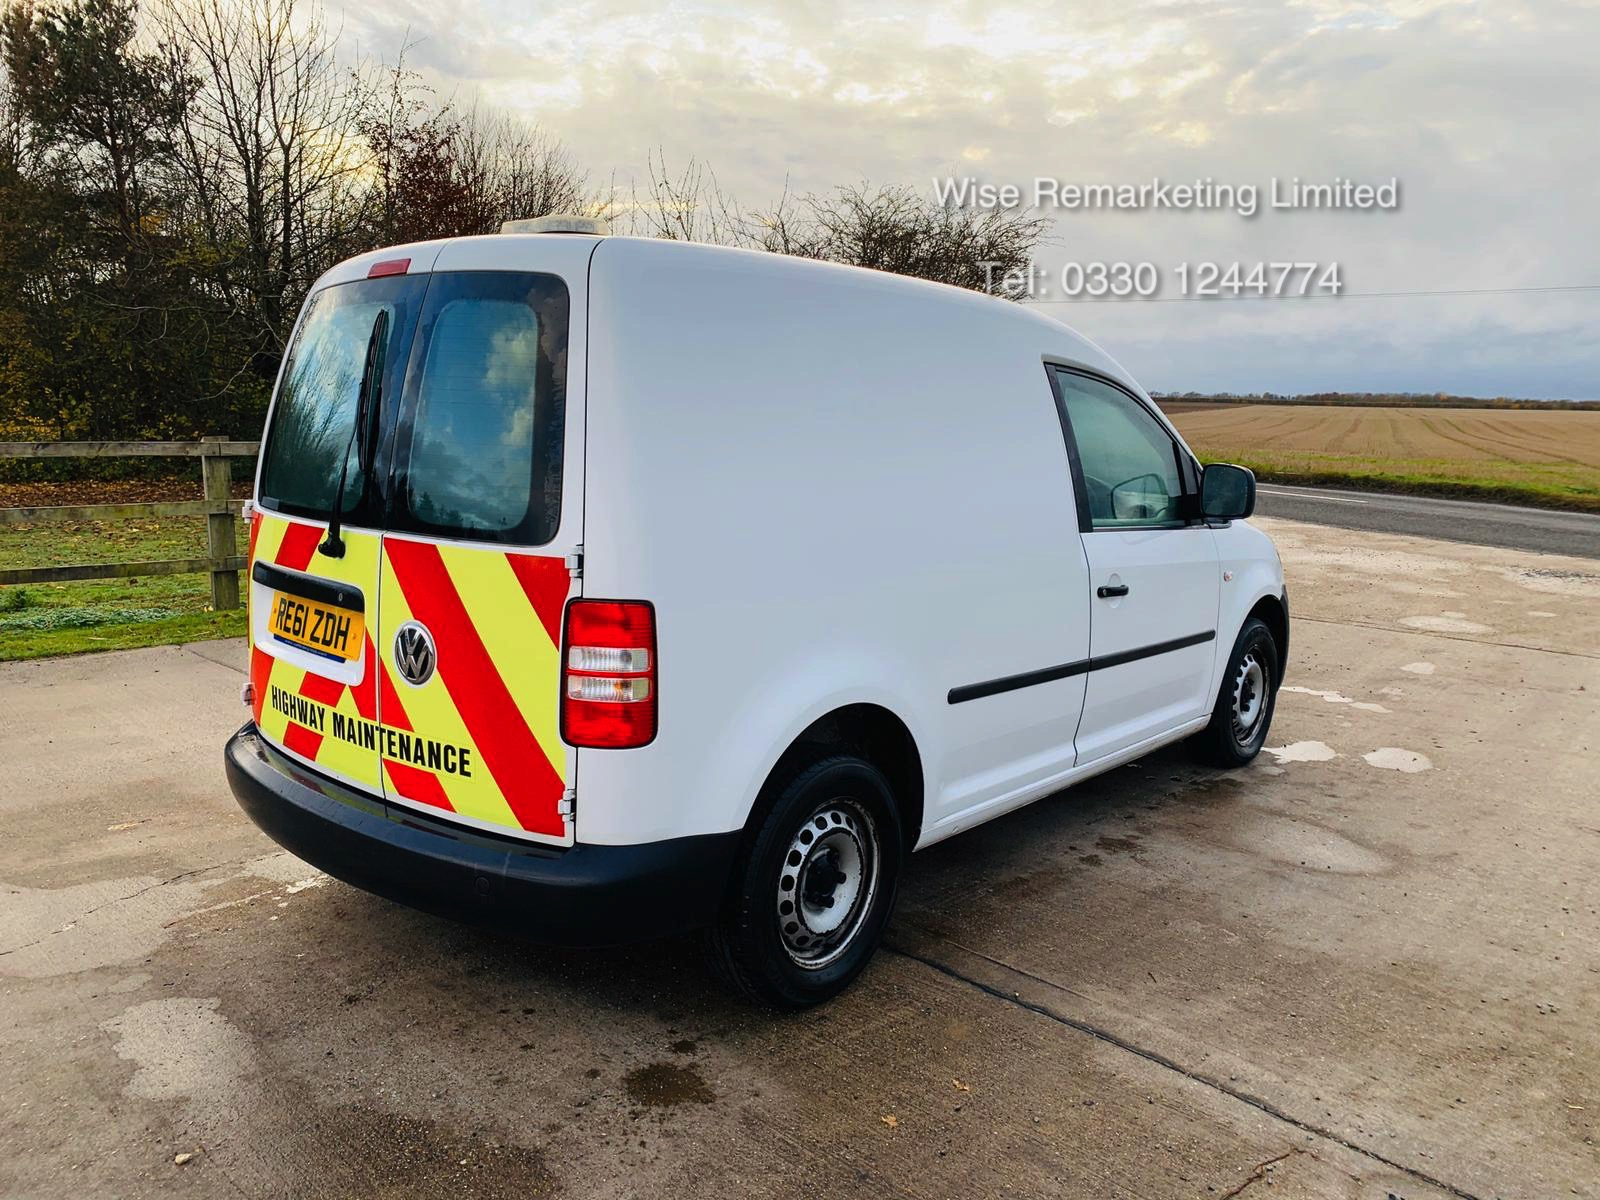 Volkswagen Caddy C20 1.6 TDI - 2012 Model - 1 Keeper From New - Side Loading Door - Ply Lined - Image 2 of 16